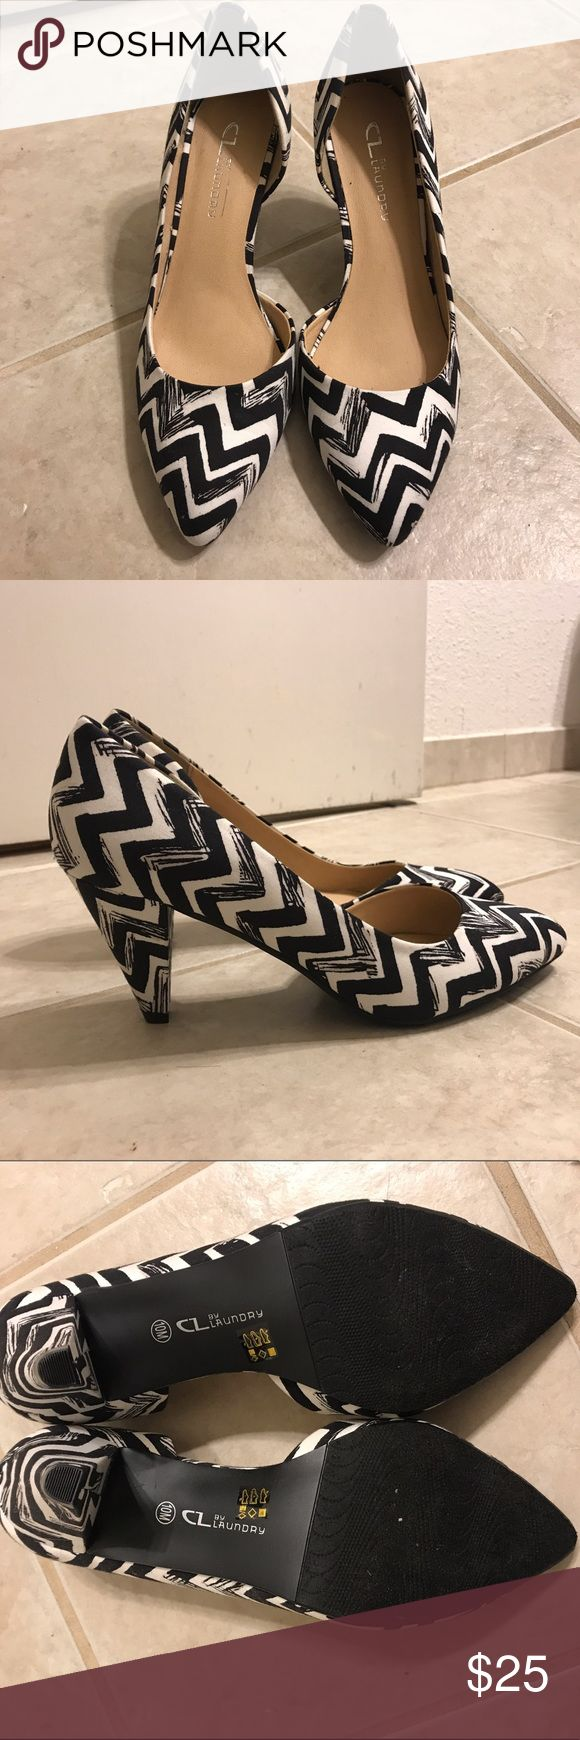 """Chinese Laundry Black and White D'orsay Heels Super cute back and white scribble chevron heels. 3"""". Brand new! Fabric upper. Almond toe. Chinese Laundry Shoes Heels"""